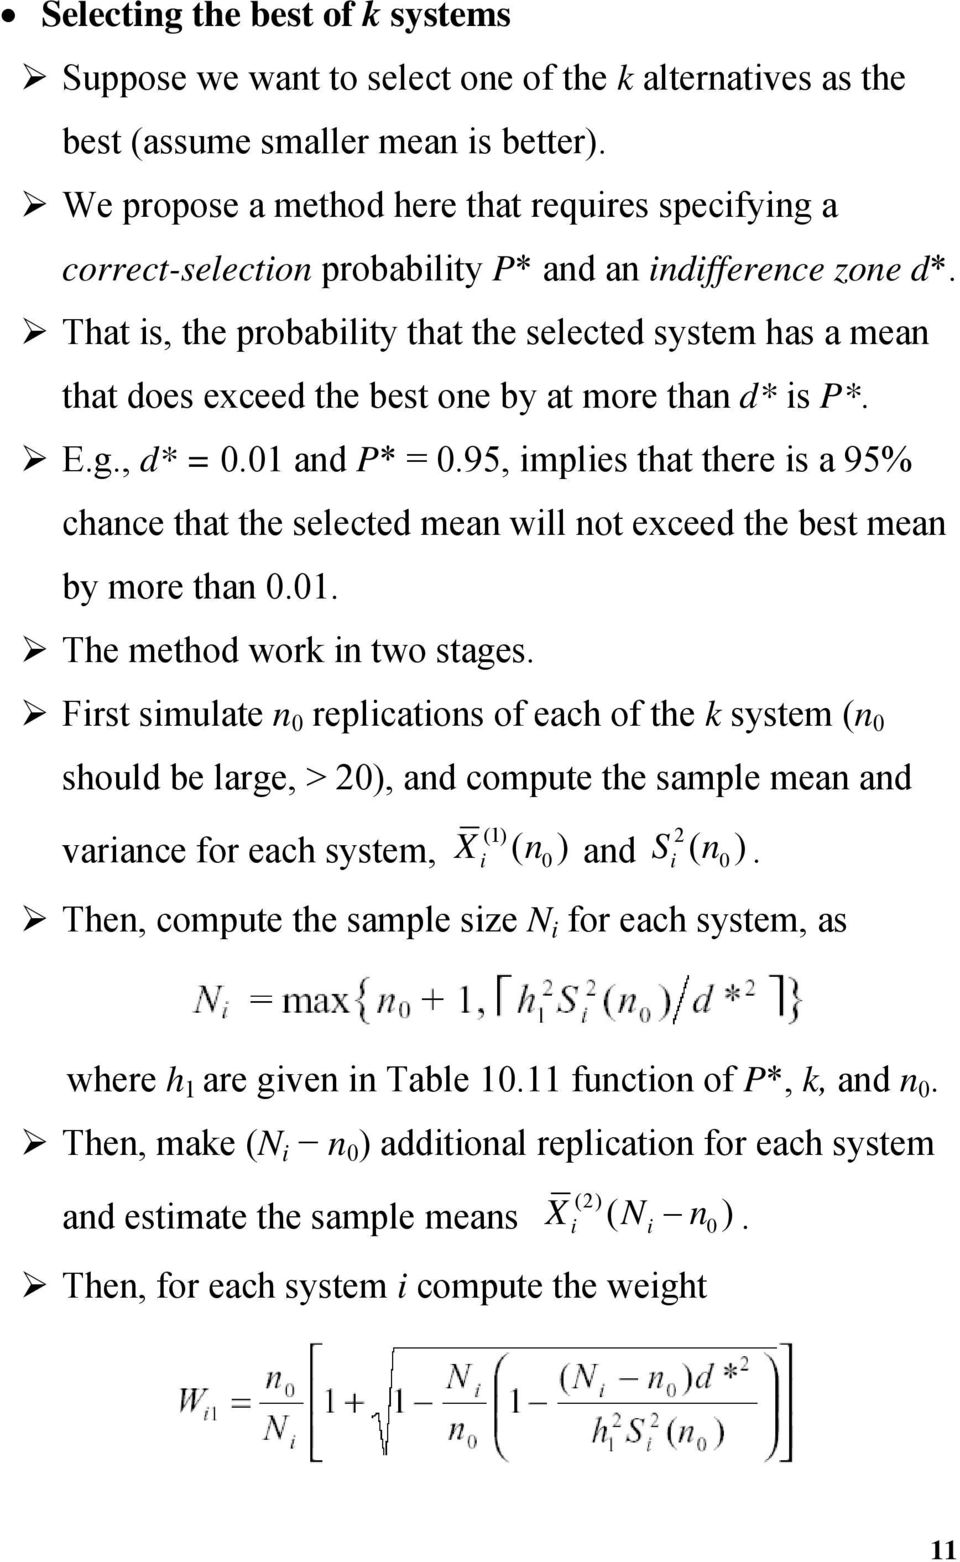 That is, the probability that the selected system has a mea that does exceed the best oe by at more tha d* is P*. E.g., d* = 0.01 ad P* = 0.